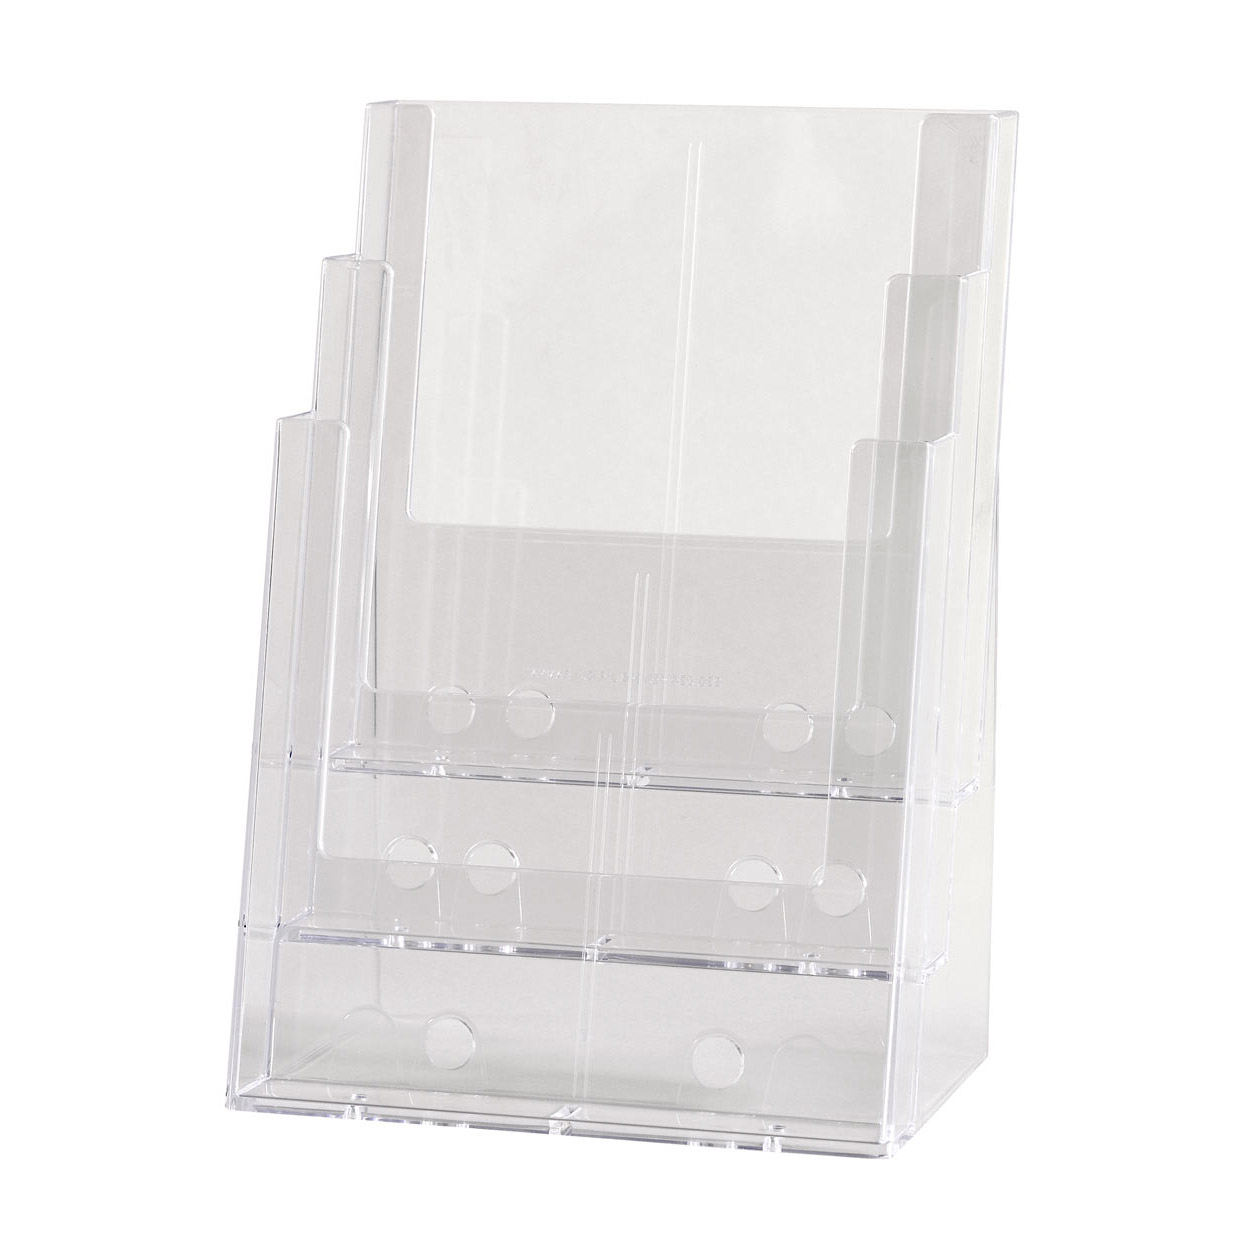 Acrylic Freestanding brochure holder Triple Level A4 Size. Dimension 320 H x 240 W x 280mm D